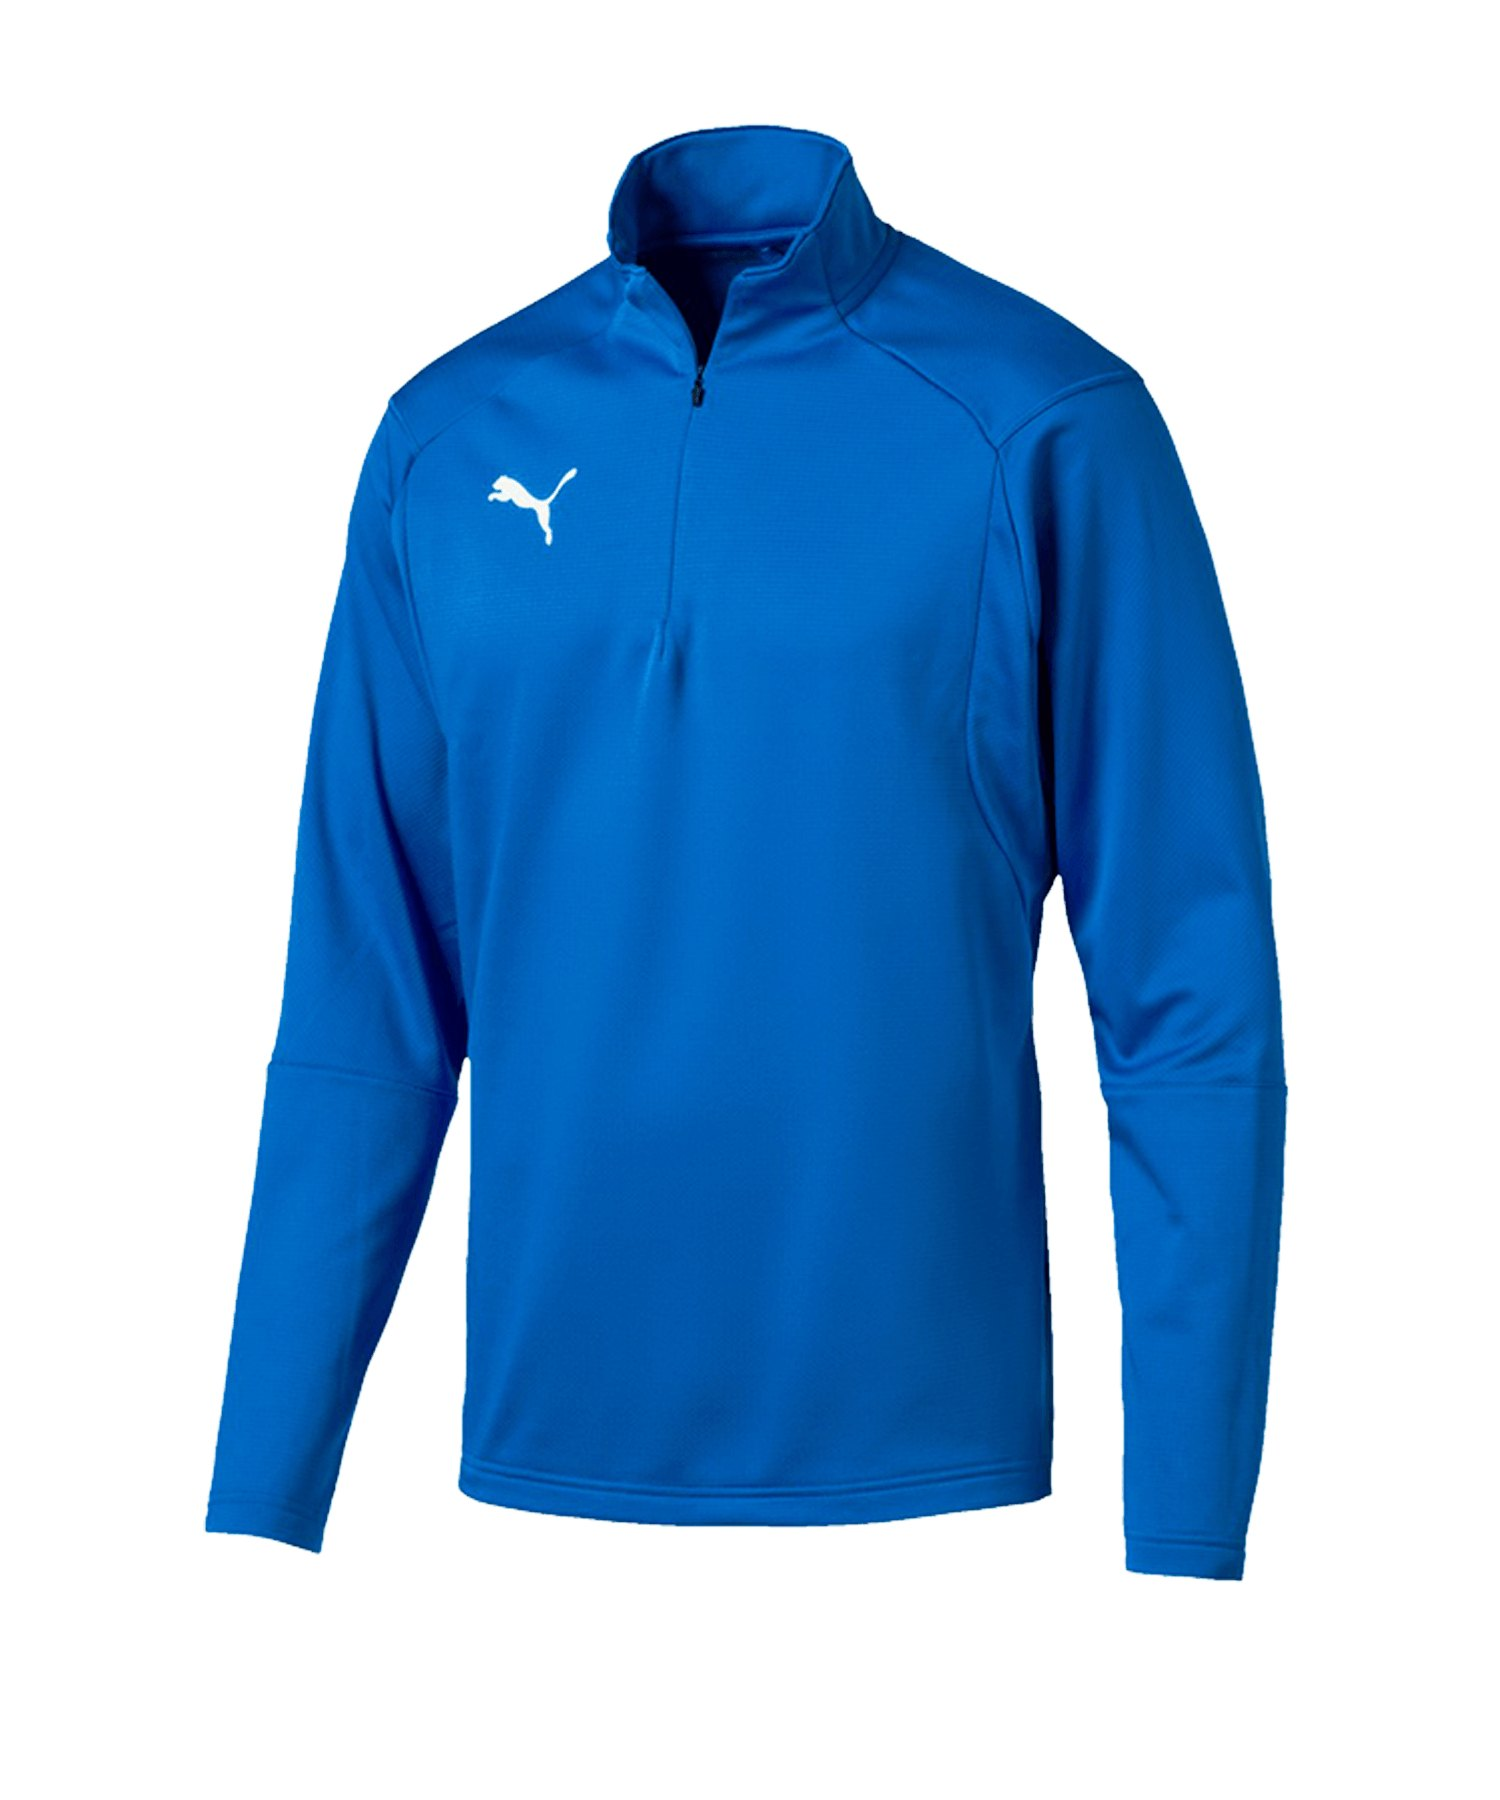 PUMA LIGA Training 1/4 Zip Top Sweatshirt Blau F02 - blau